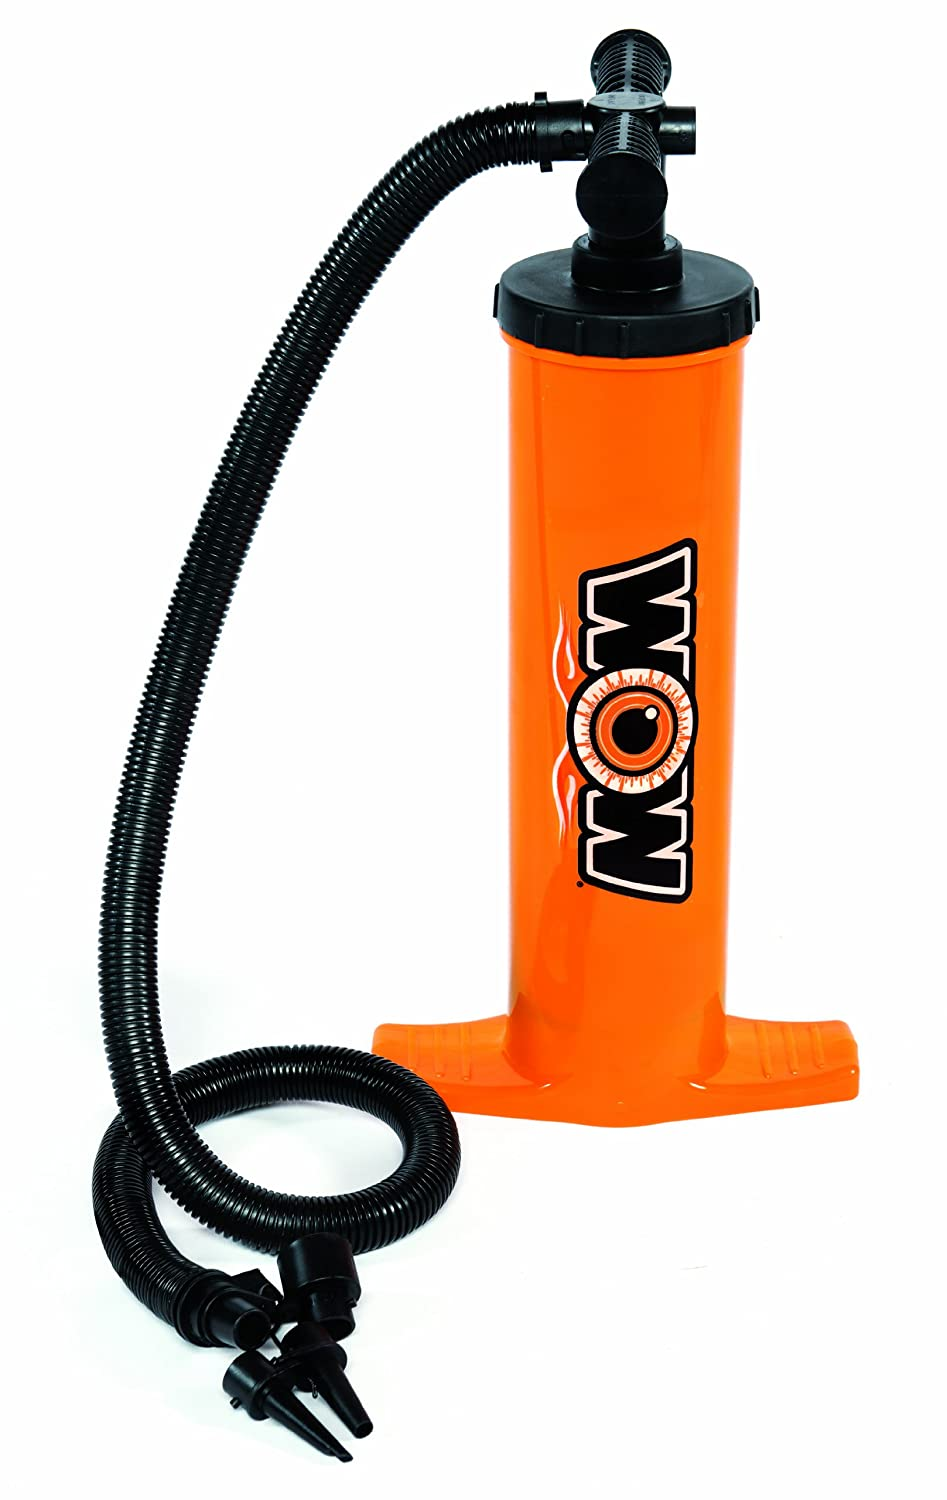 Airflow with Up Stroke and Down Stroke WOW Watersports WOW World of Watersports Double Action Hand Pump 13-4030